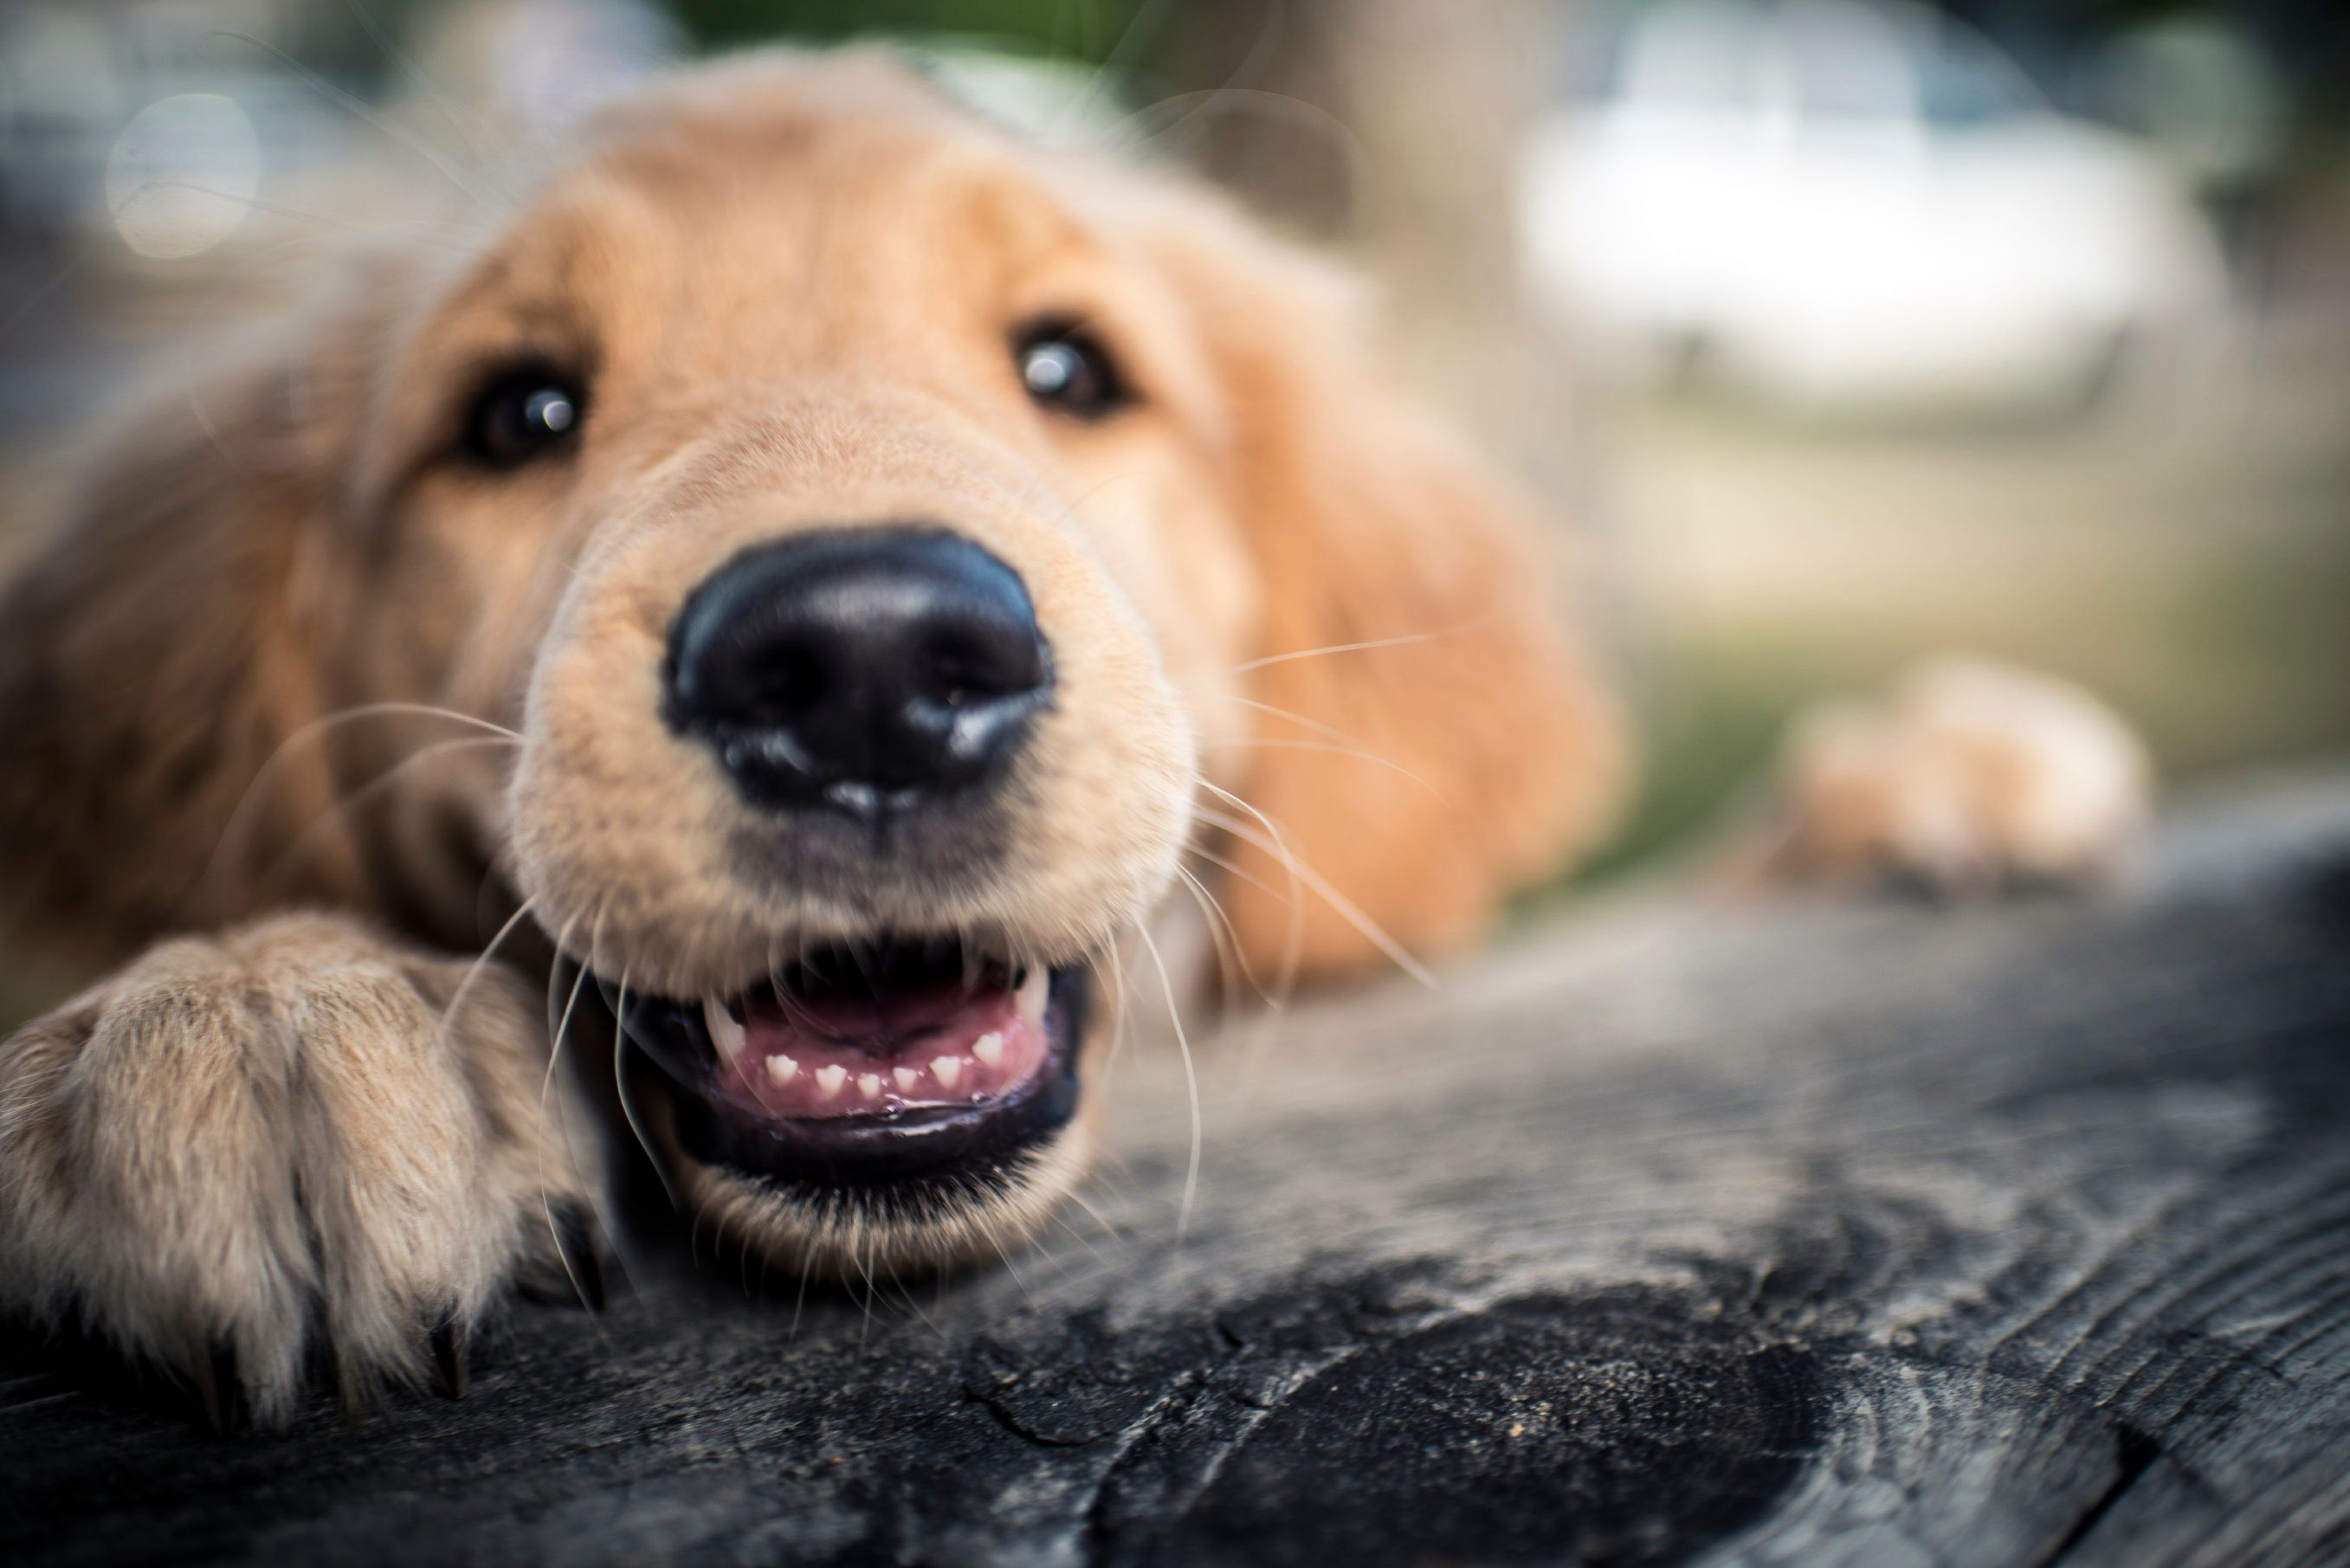 4 Things You Can Do To Make Your Pet Happier And Healthier